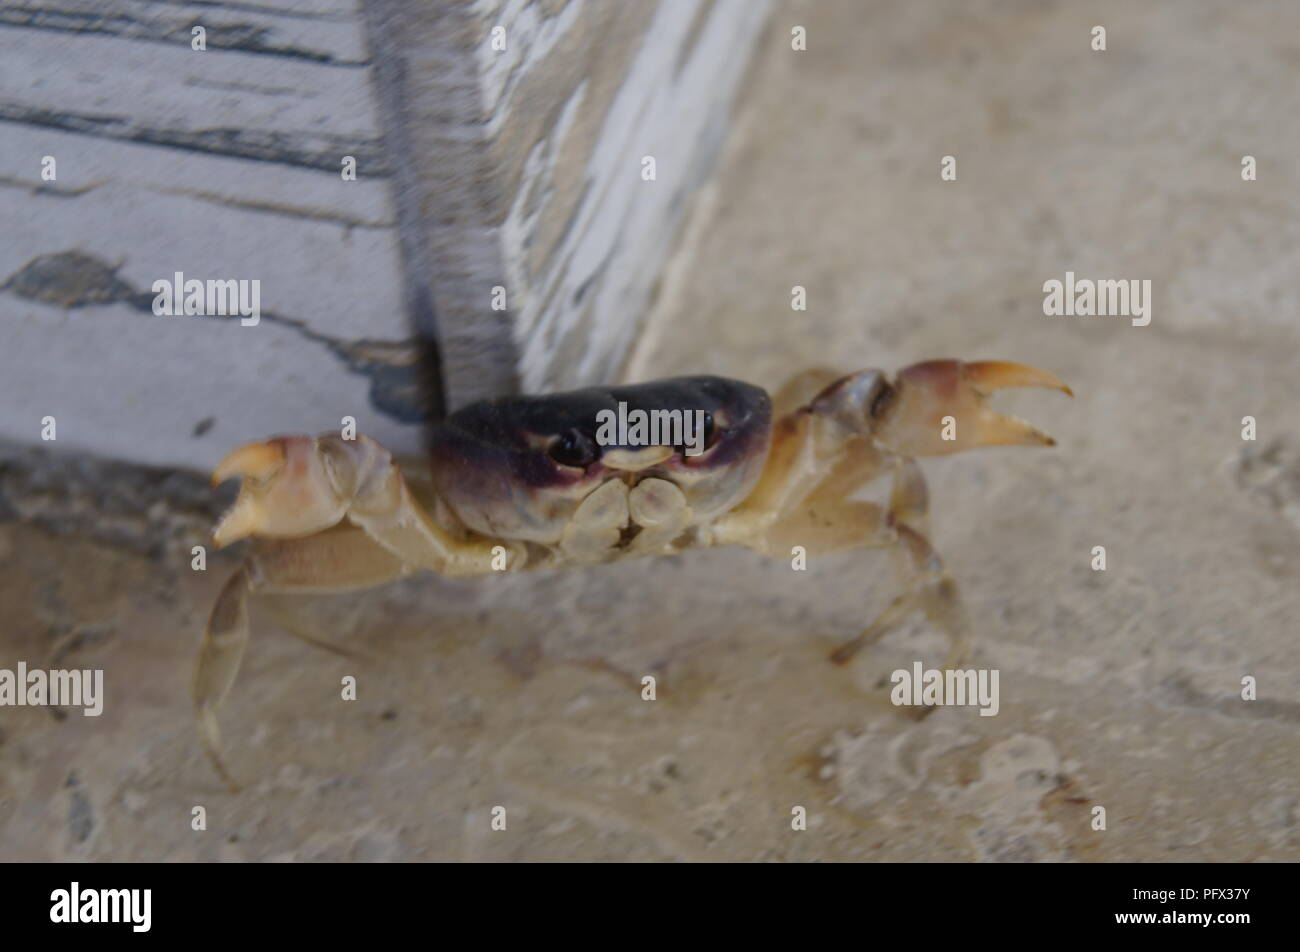 Small land crab escaping from the photographer Stock Photo